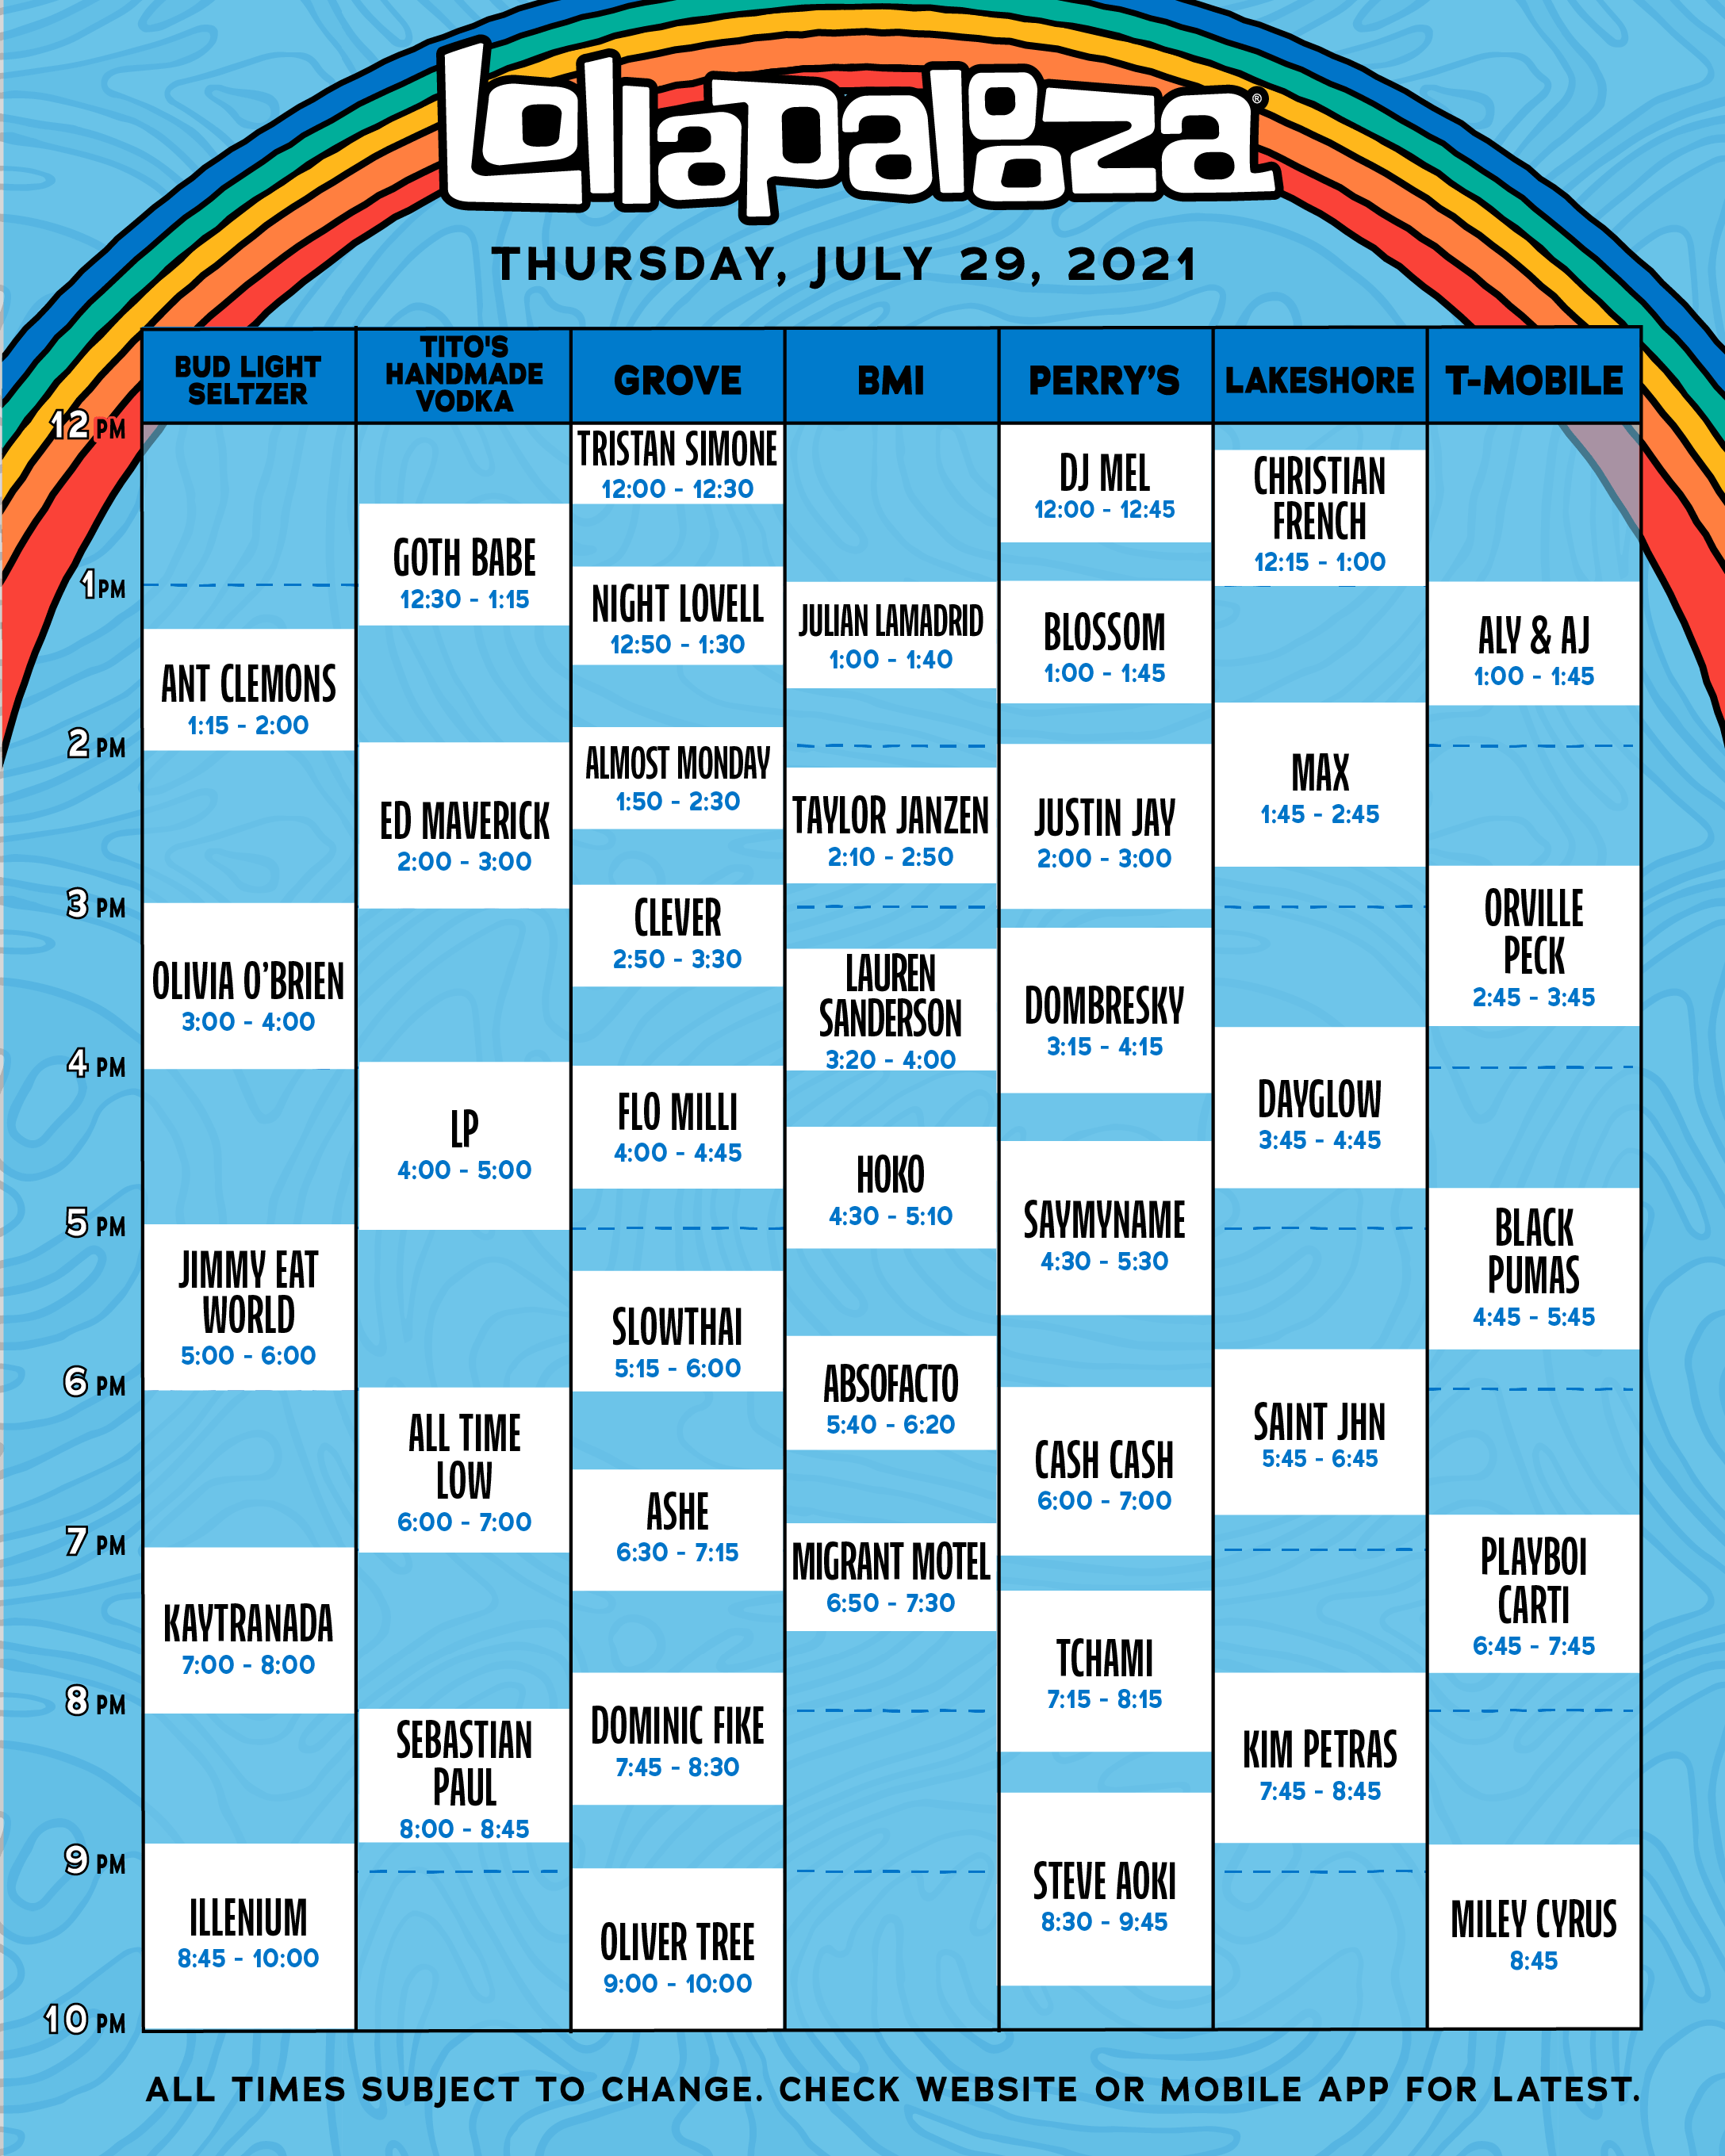 Lollapalooza Full 2021 Schedule Announced! 2